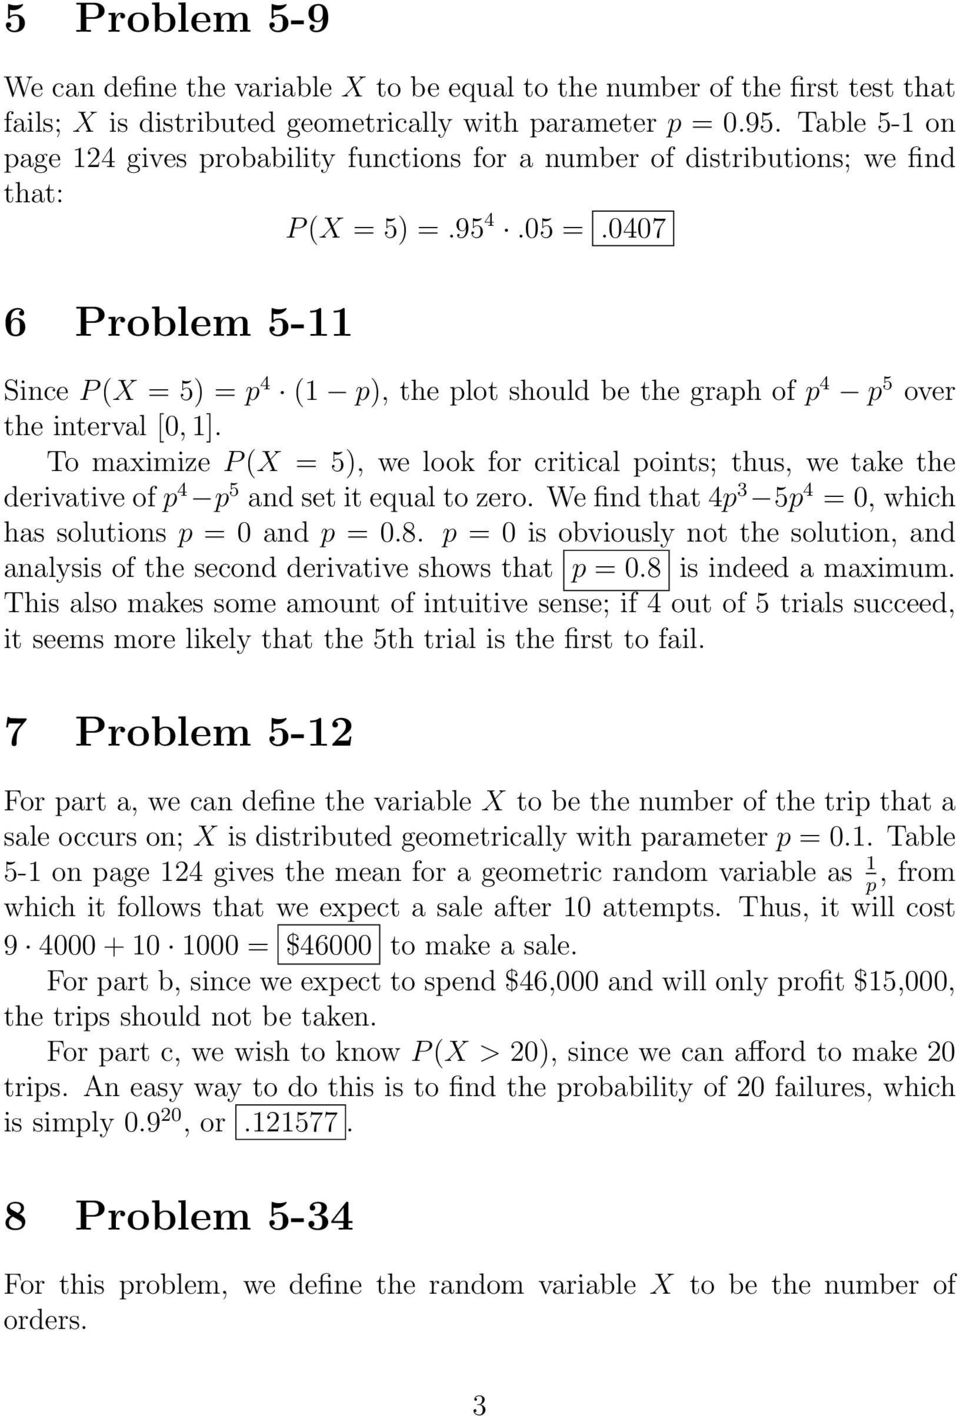 0407 6 Problem 5-11 Since P (X = 5 = p 4 (1 p, the plot should be the graph of p 4 p 5 over the interval [0, 1].